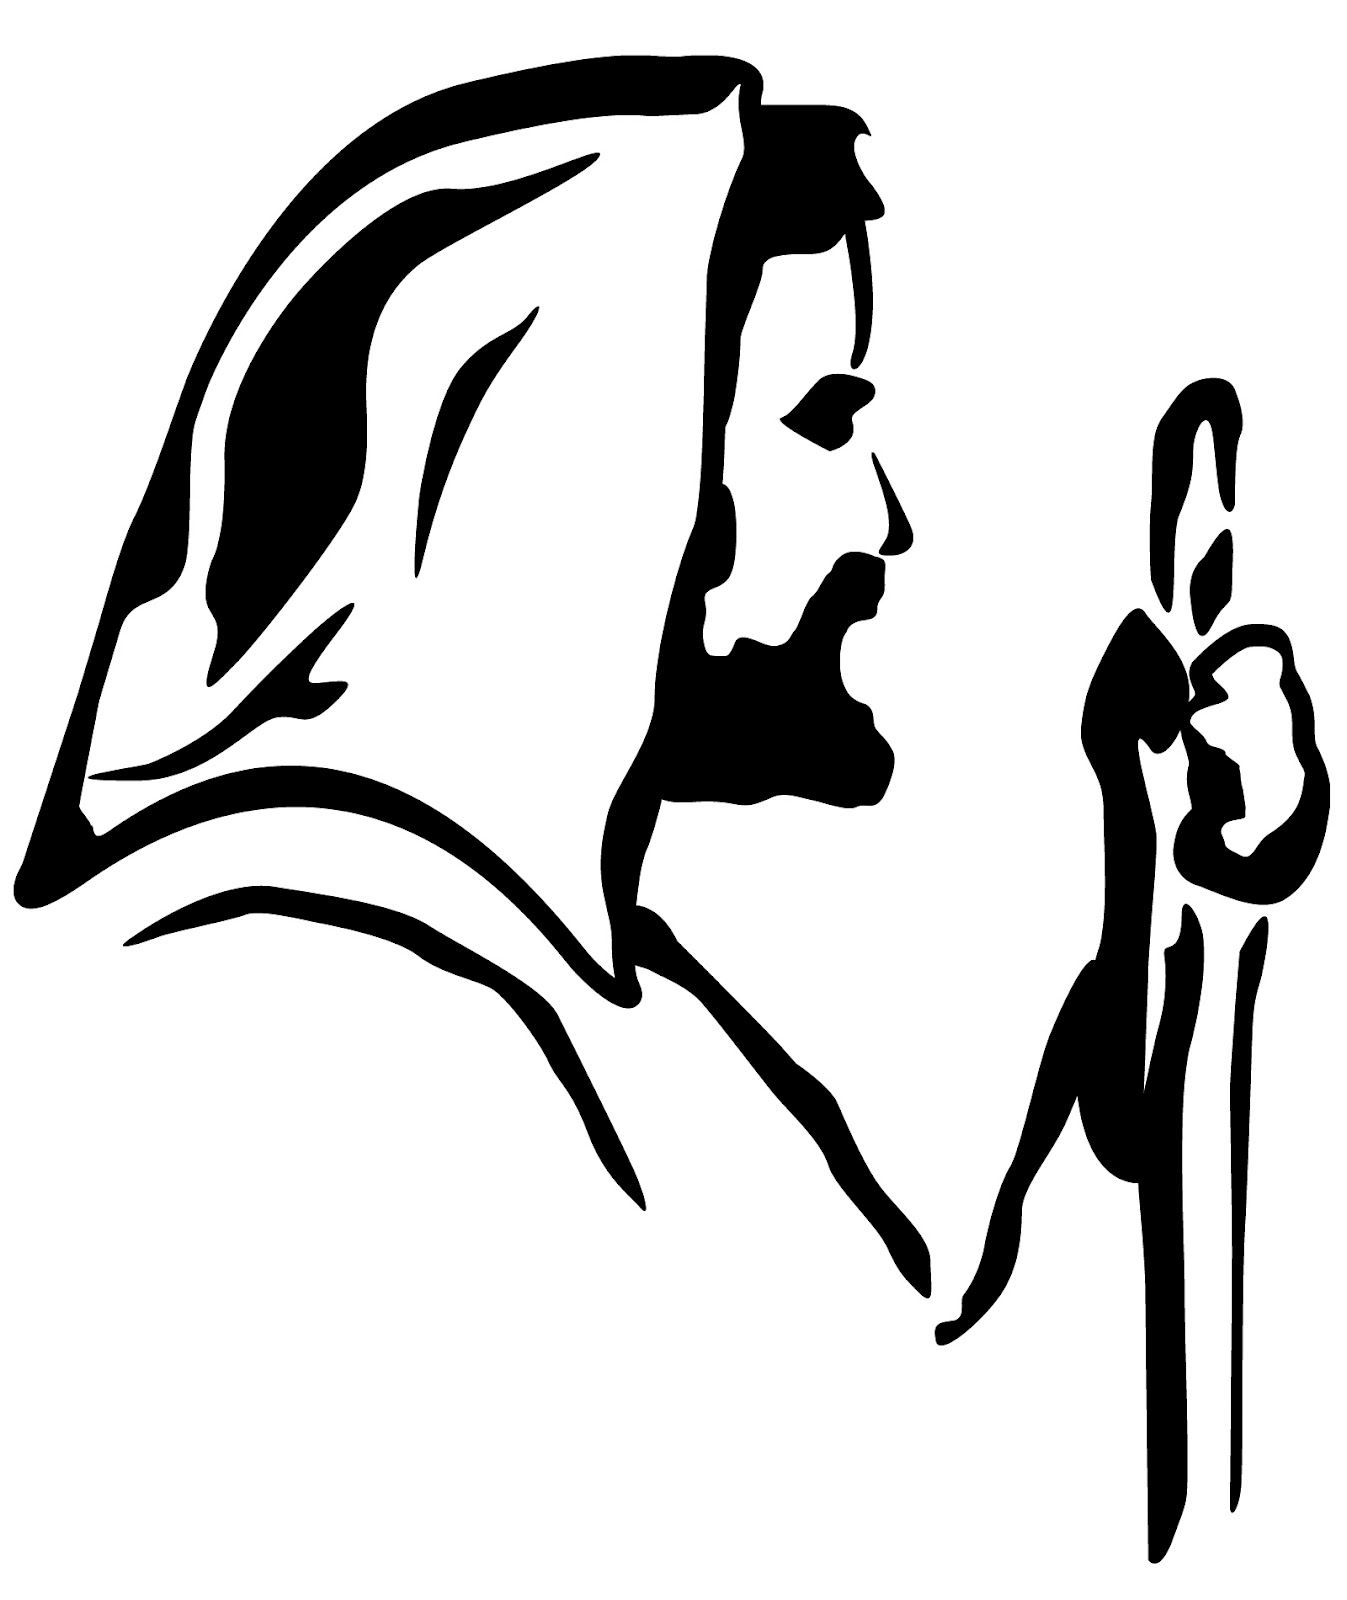 Jesus clip art black and white free clipart images 3 2.